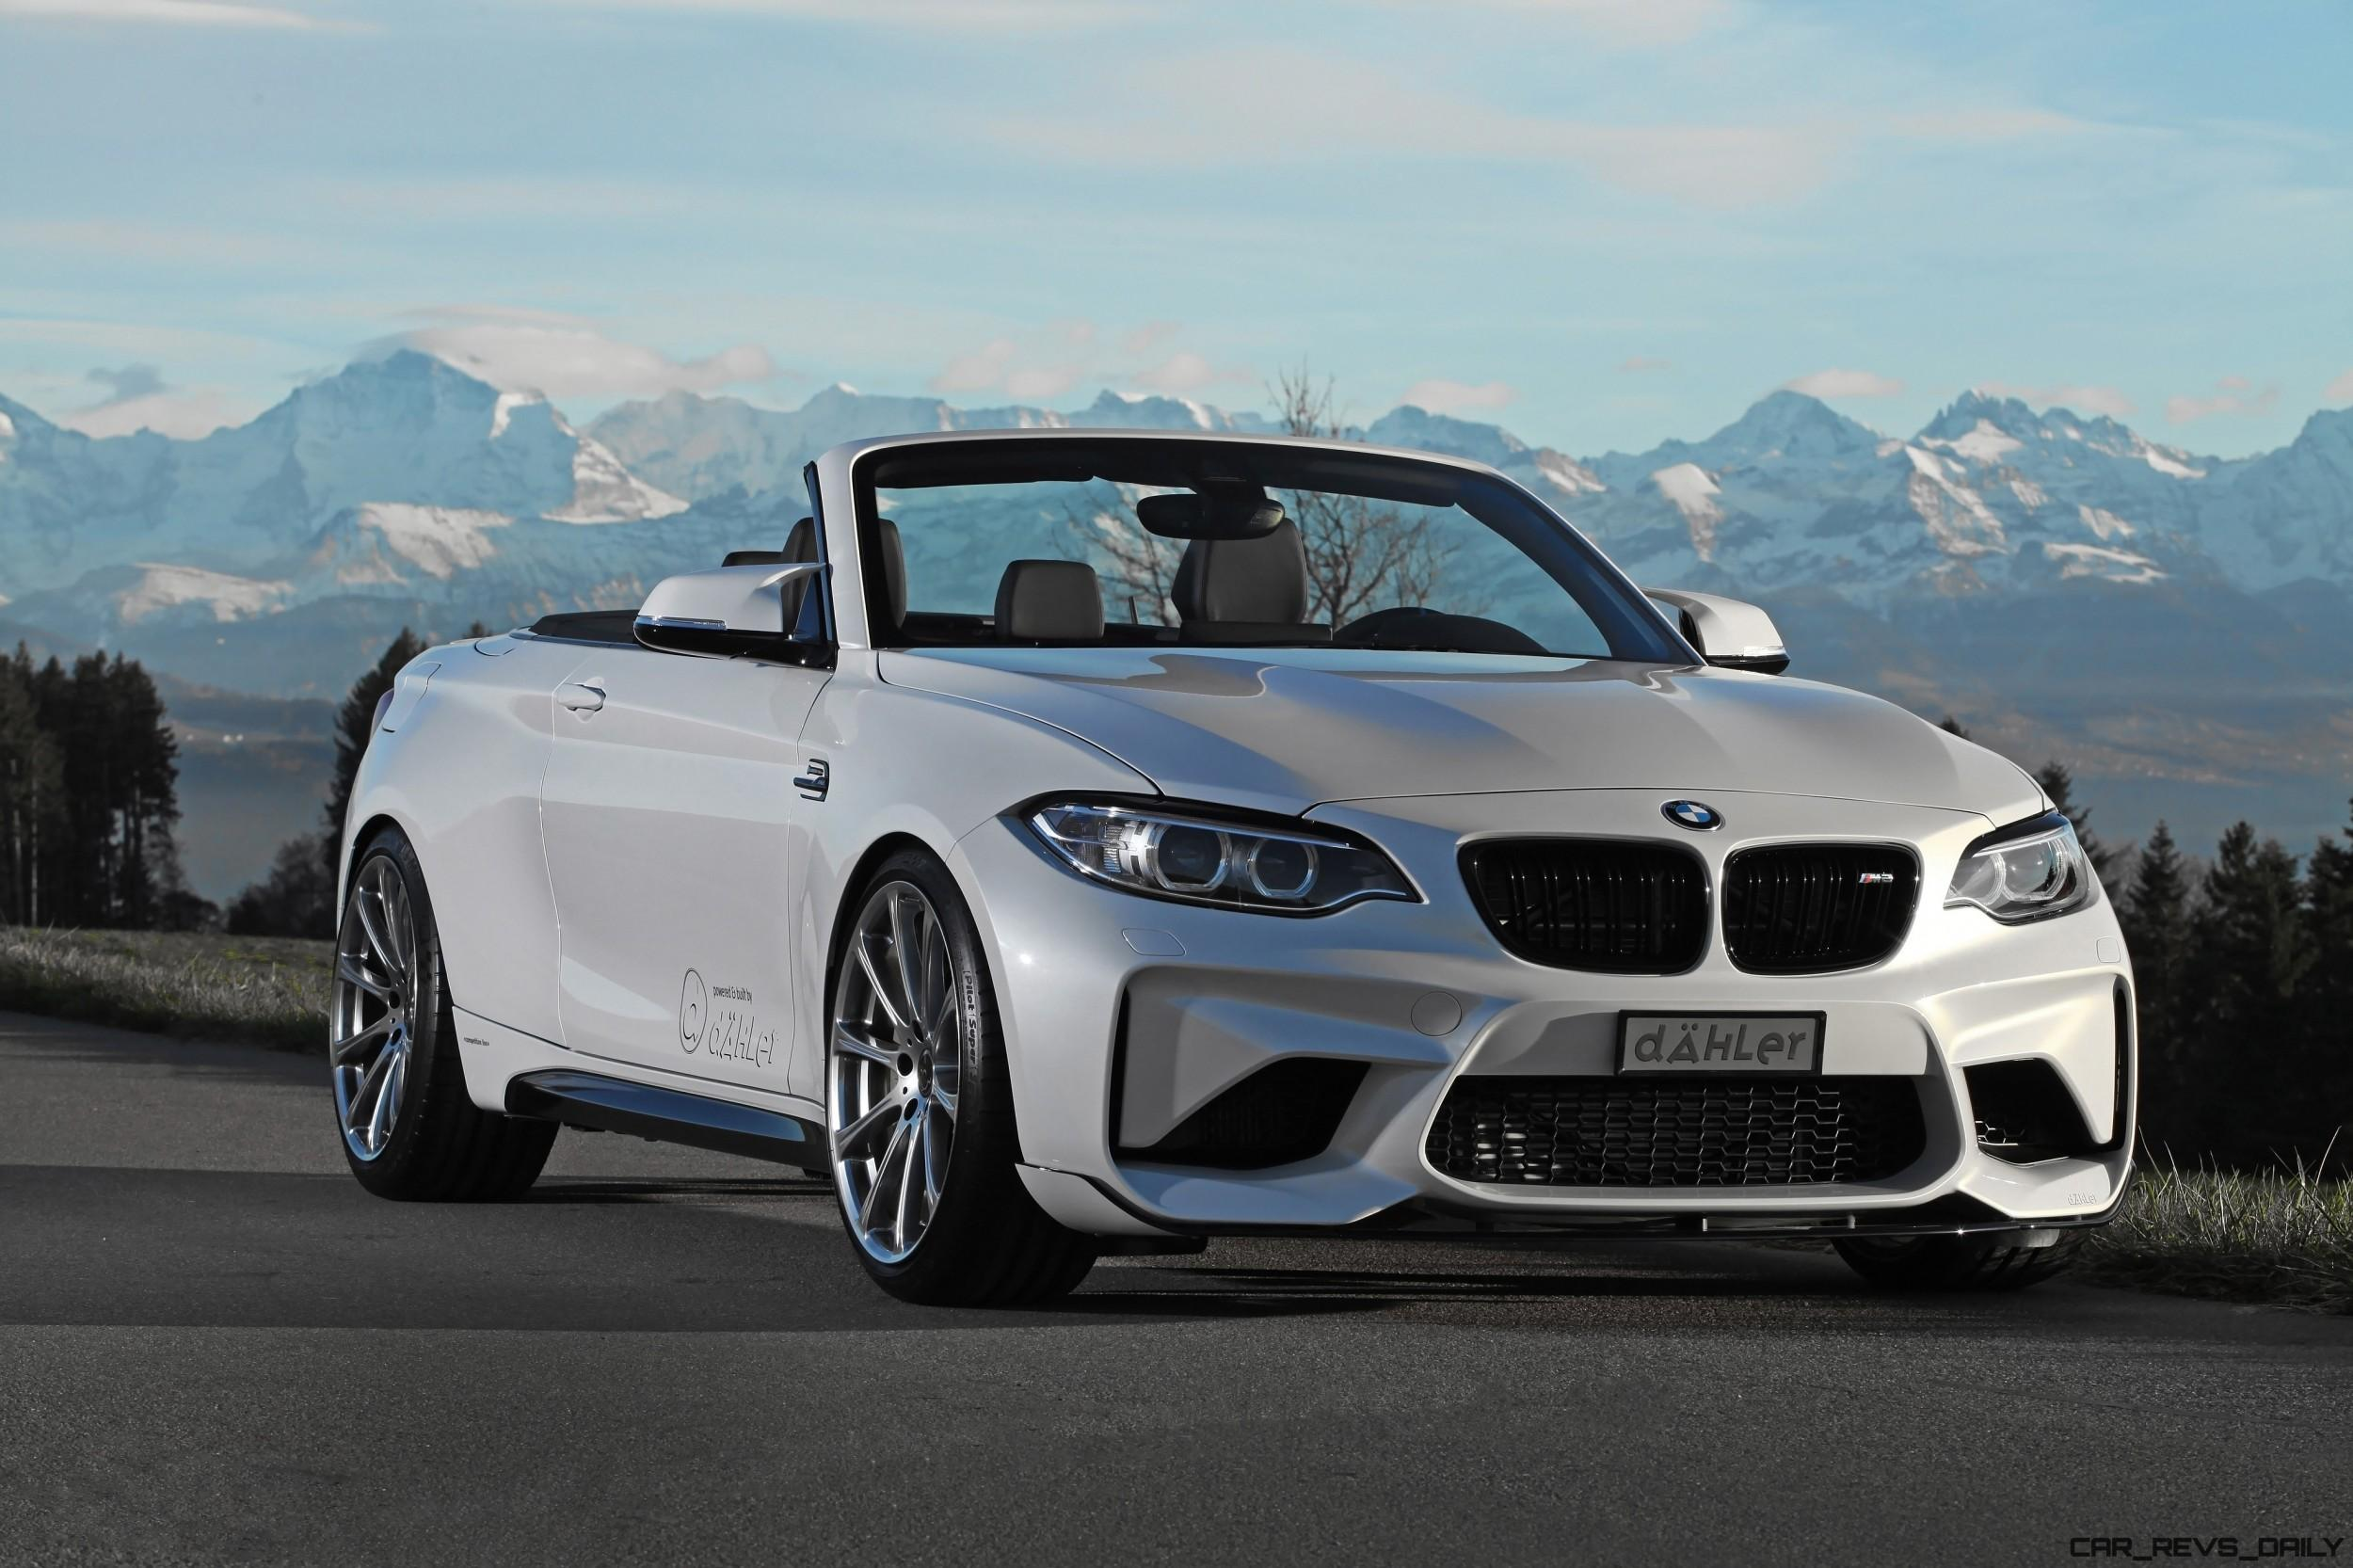 2017 bmw m2 convertible dahler gmbh makes dream real. Black Bedroom Furniture Sets. Home Design Ideas